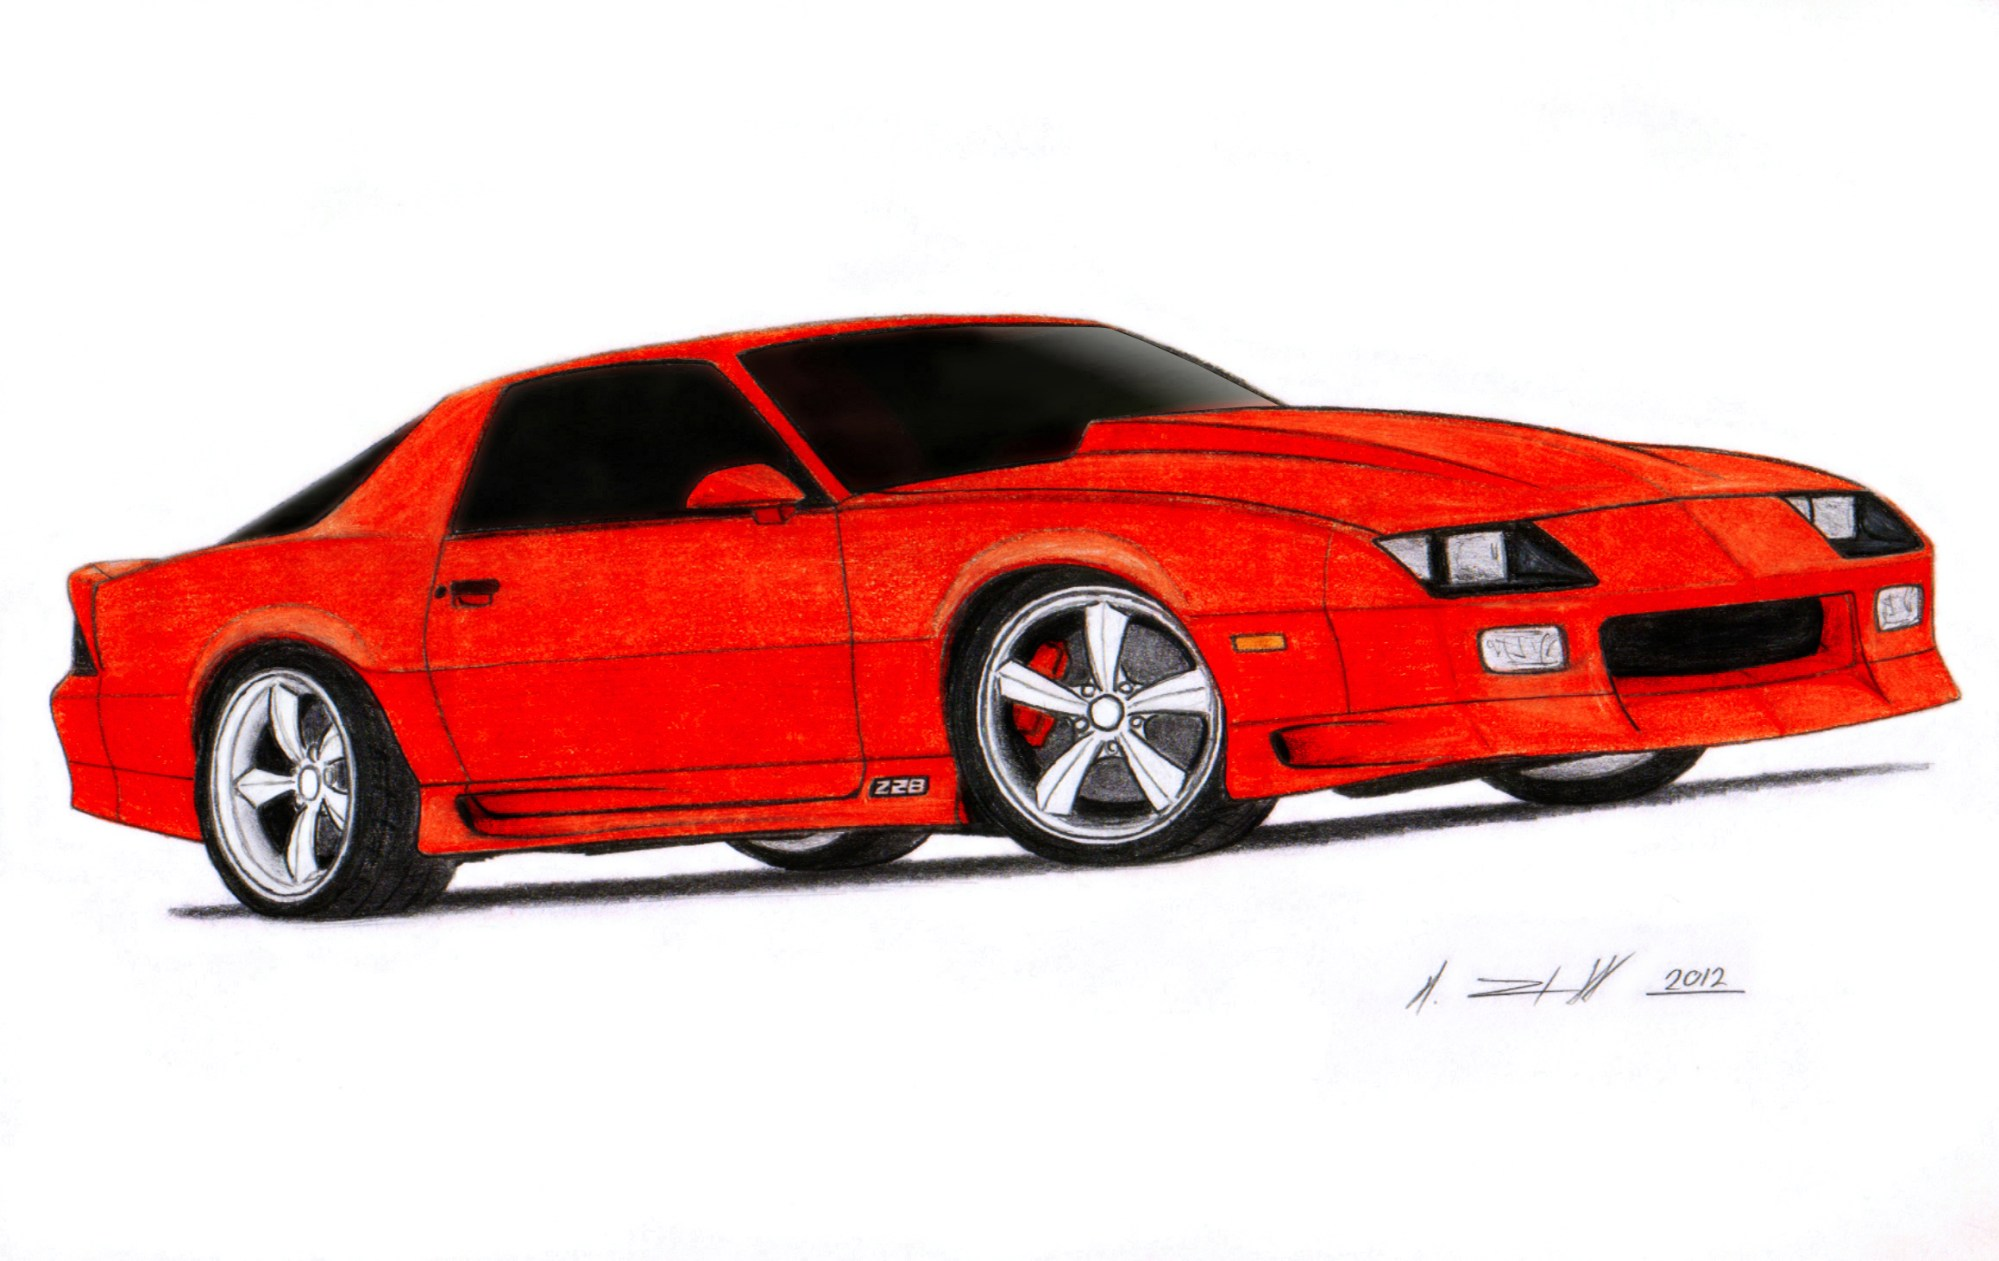 hight resolution of 2317x1461 1992 chevrolet camaro z28 iroc z drawing by vertualissimo